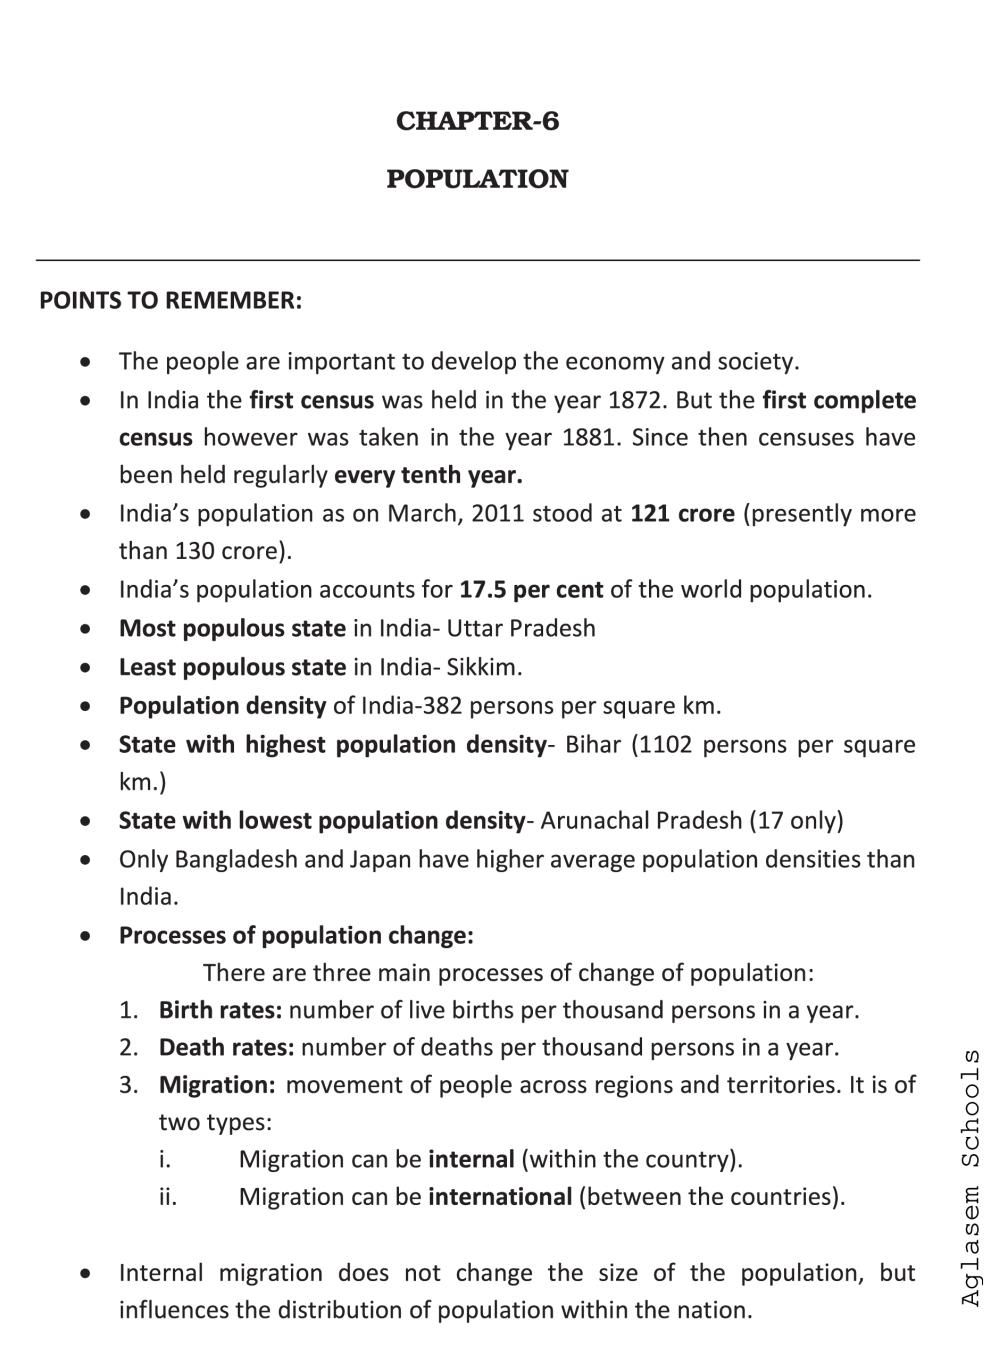 Class 9 Social Science (Geography) Population Notes